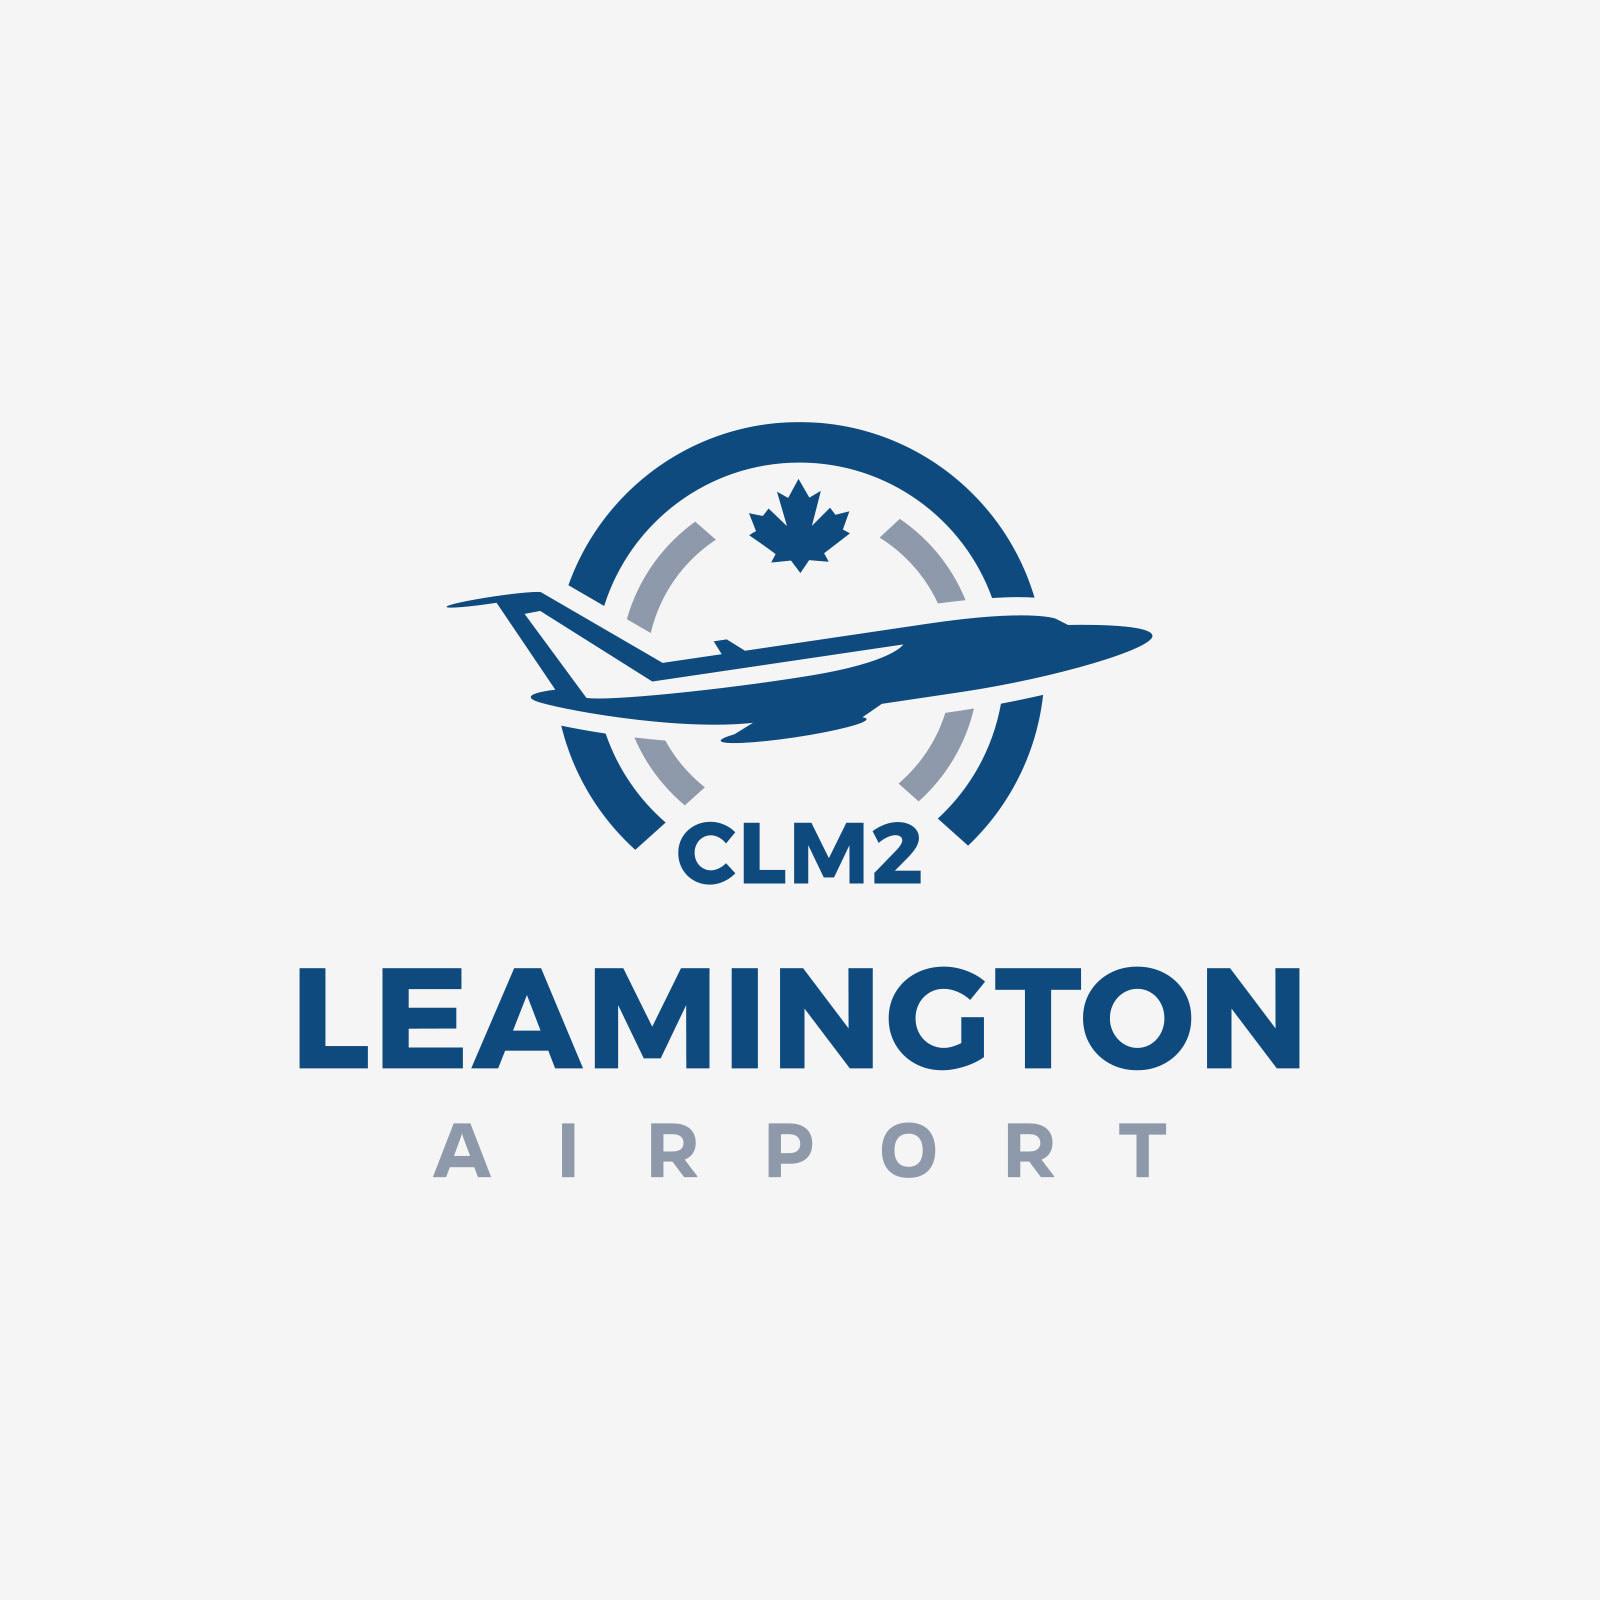 Logo design for Leamington Airport